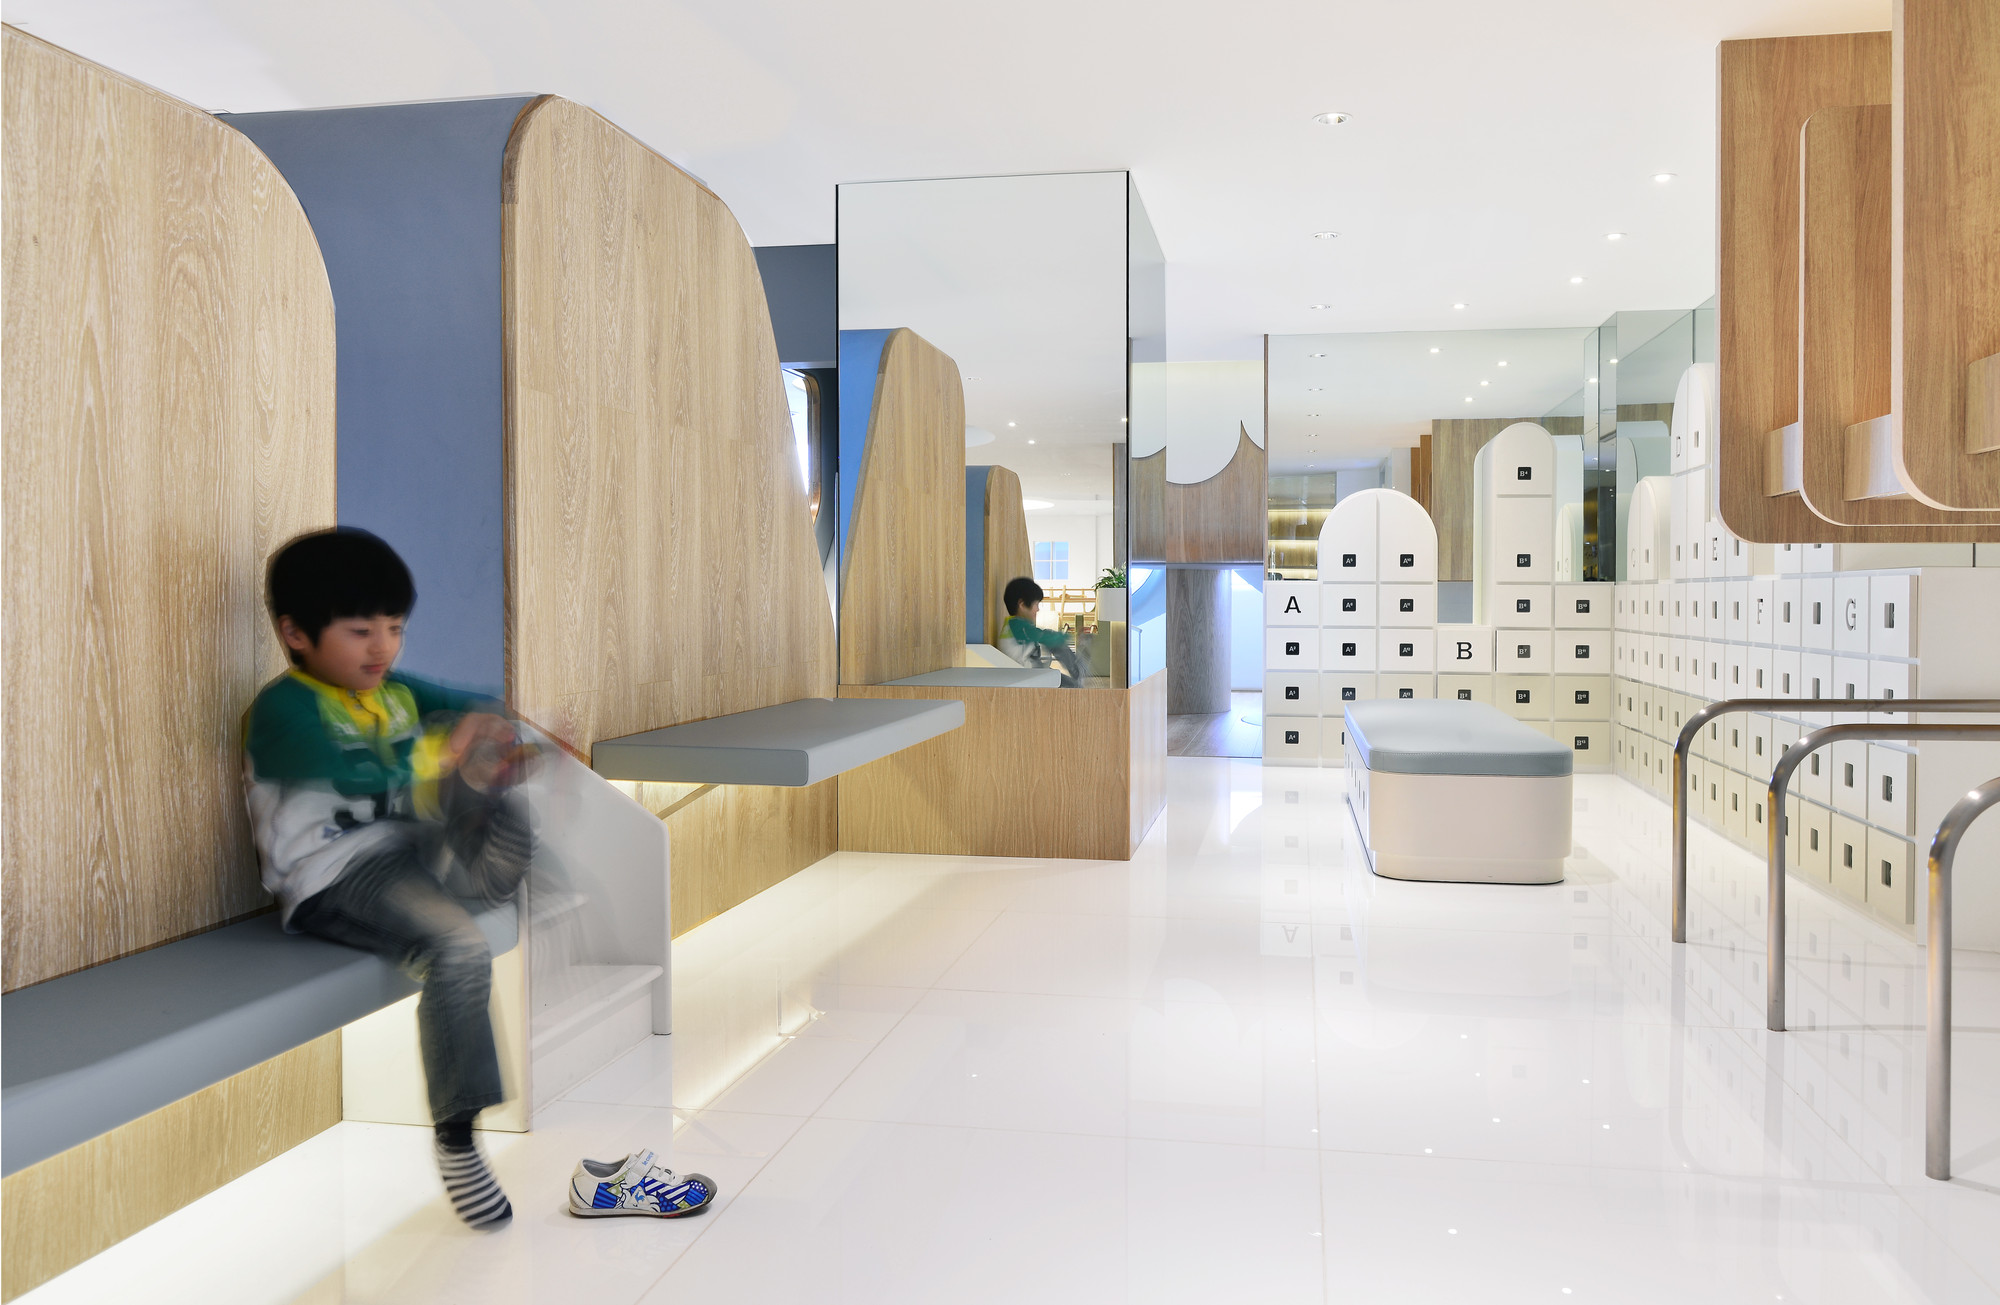 preschool bathroom design. Dick Liu Preschool Bathroom Design